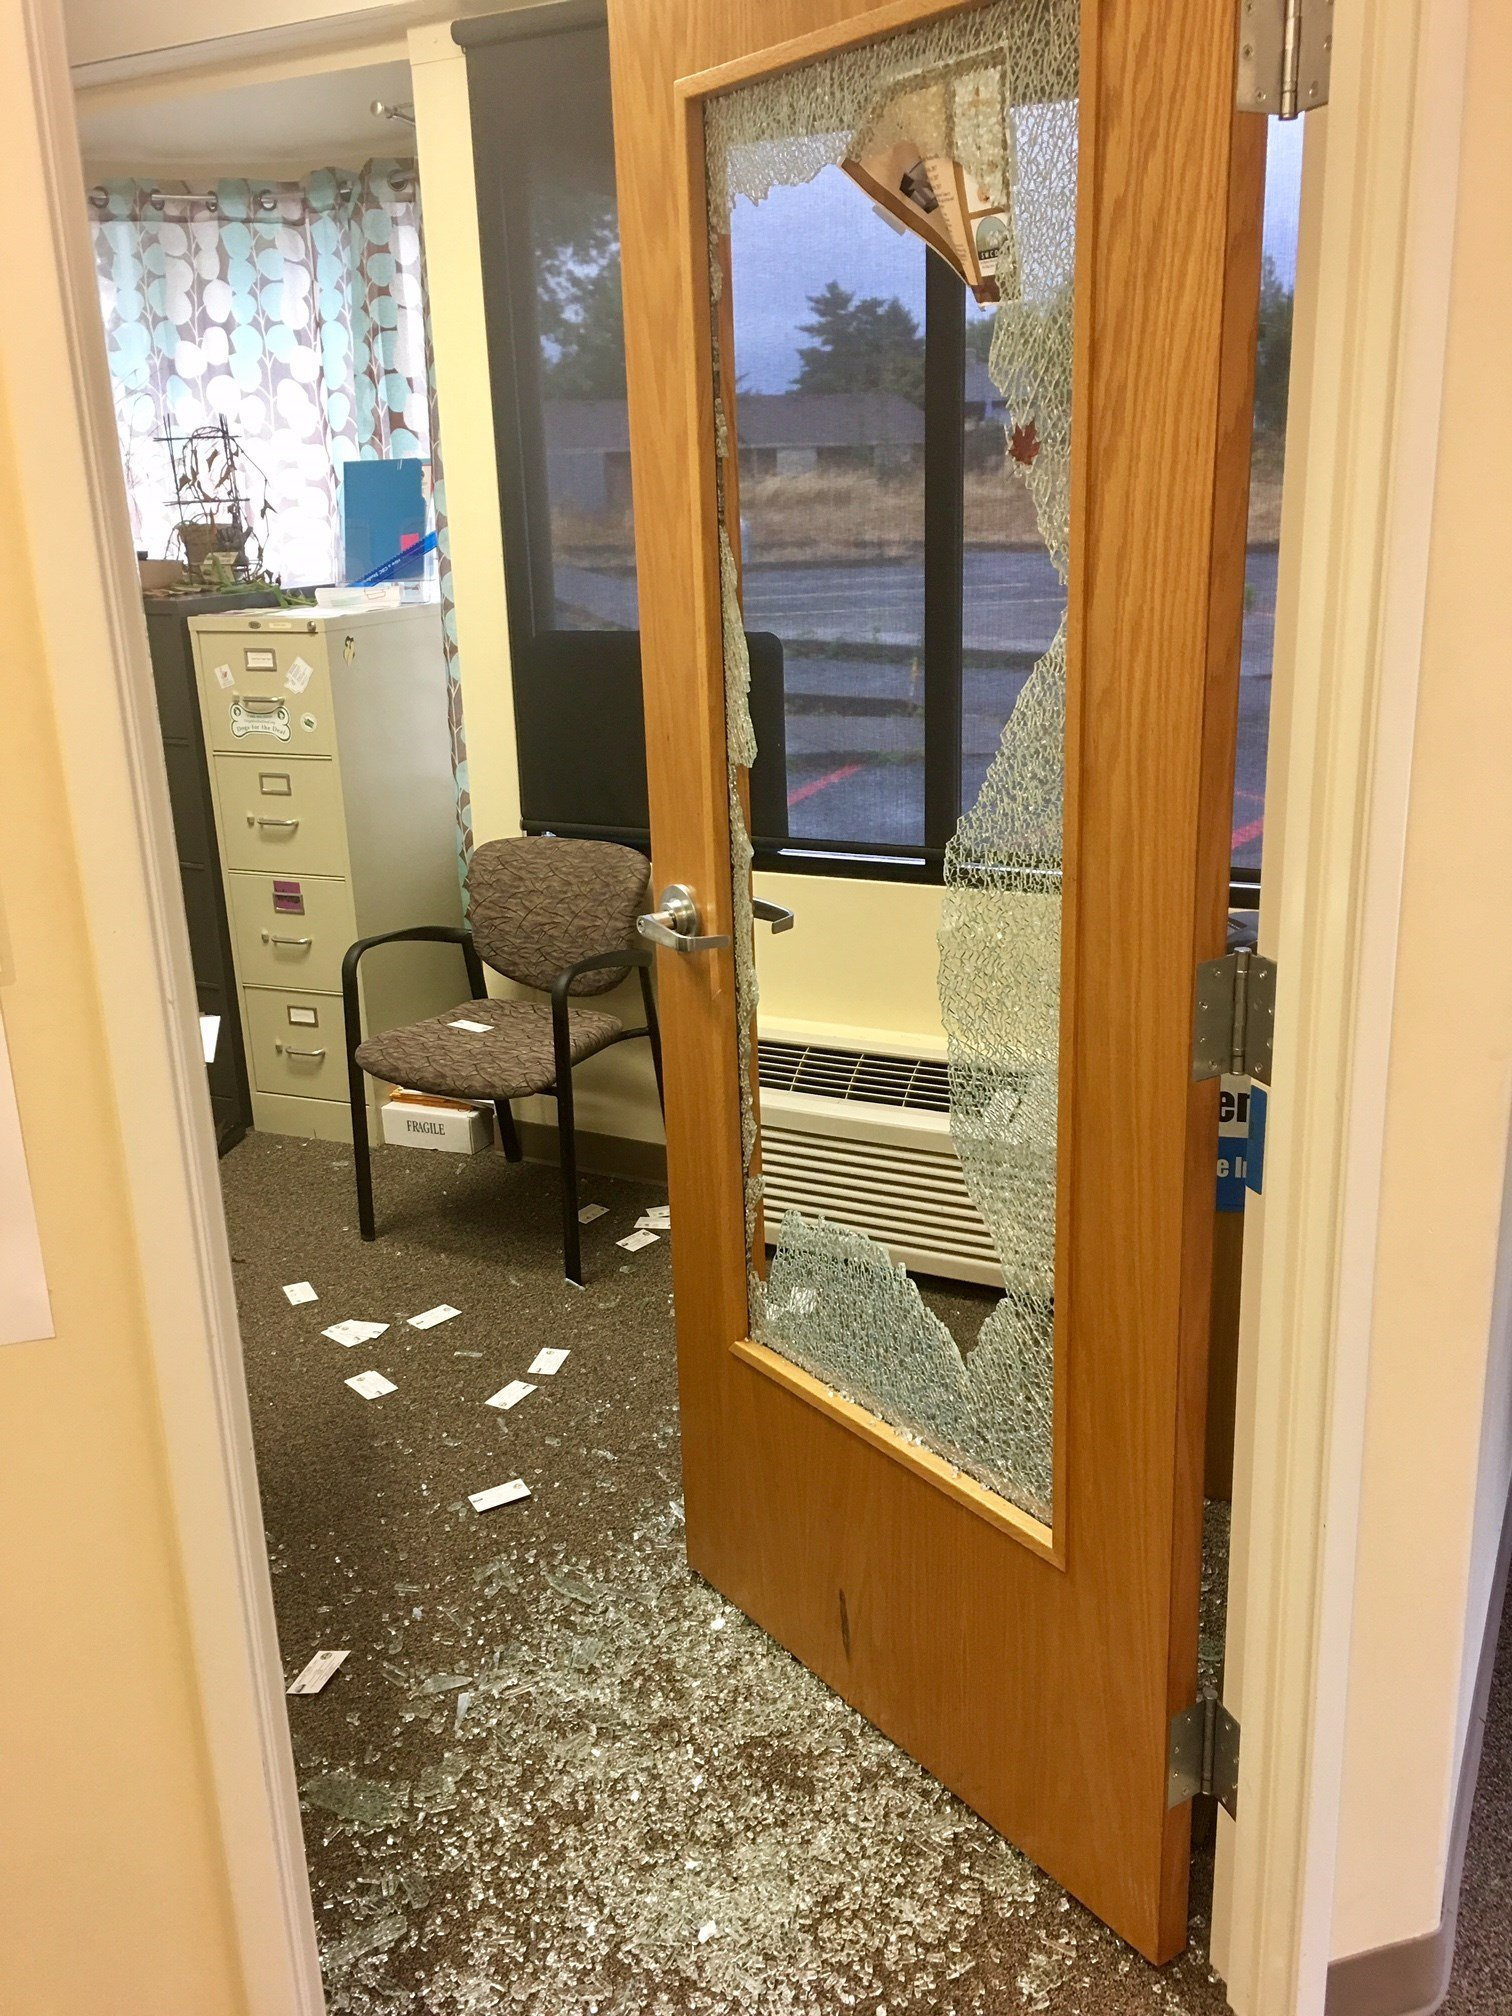 Some of the damage left behind at a Vancouver center for the deaf that was burglarized. (KPTV)